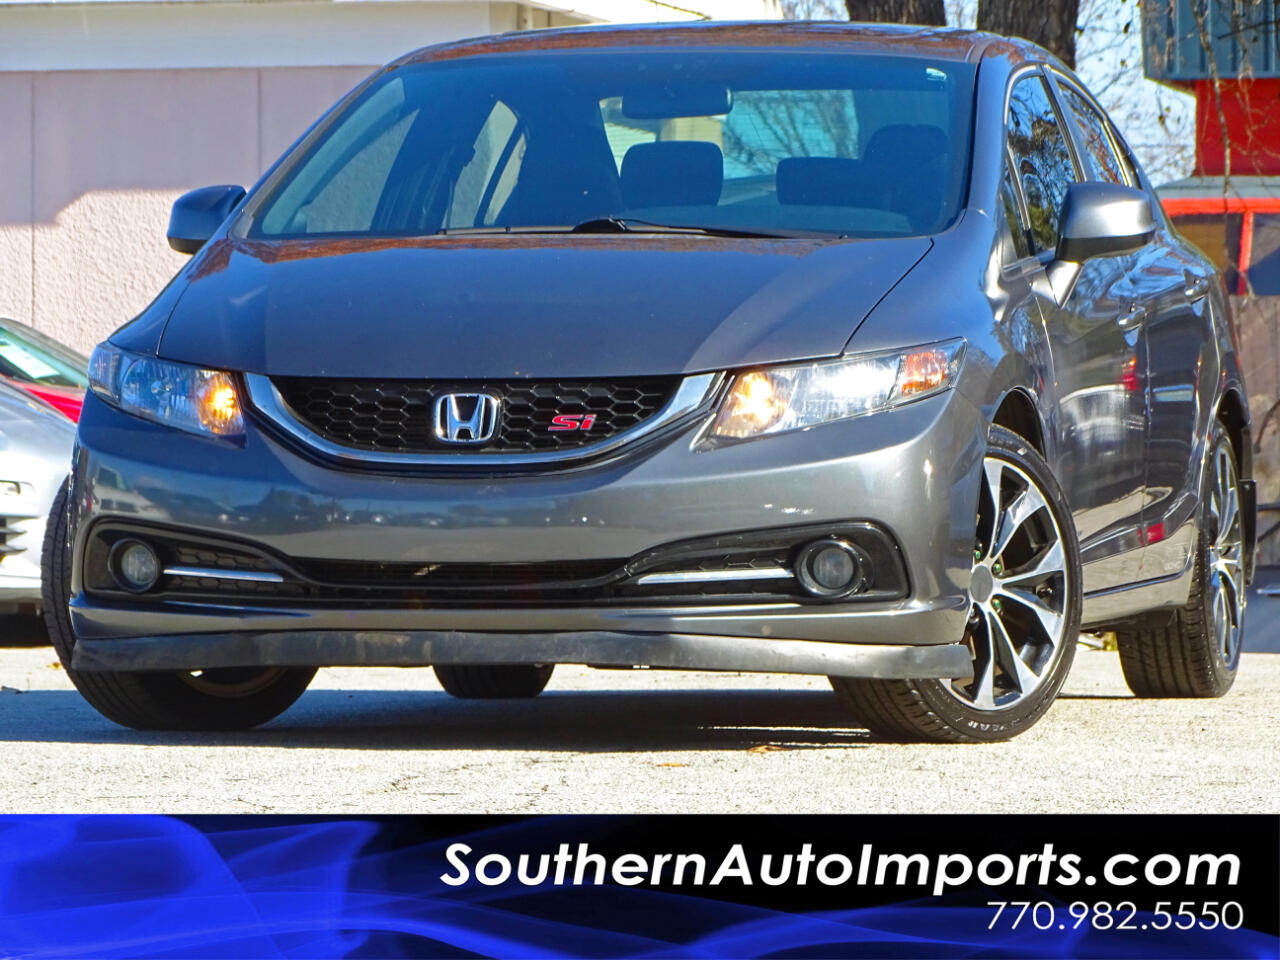 2013 Honda Civic 4dr Man Si w/Summer Tires